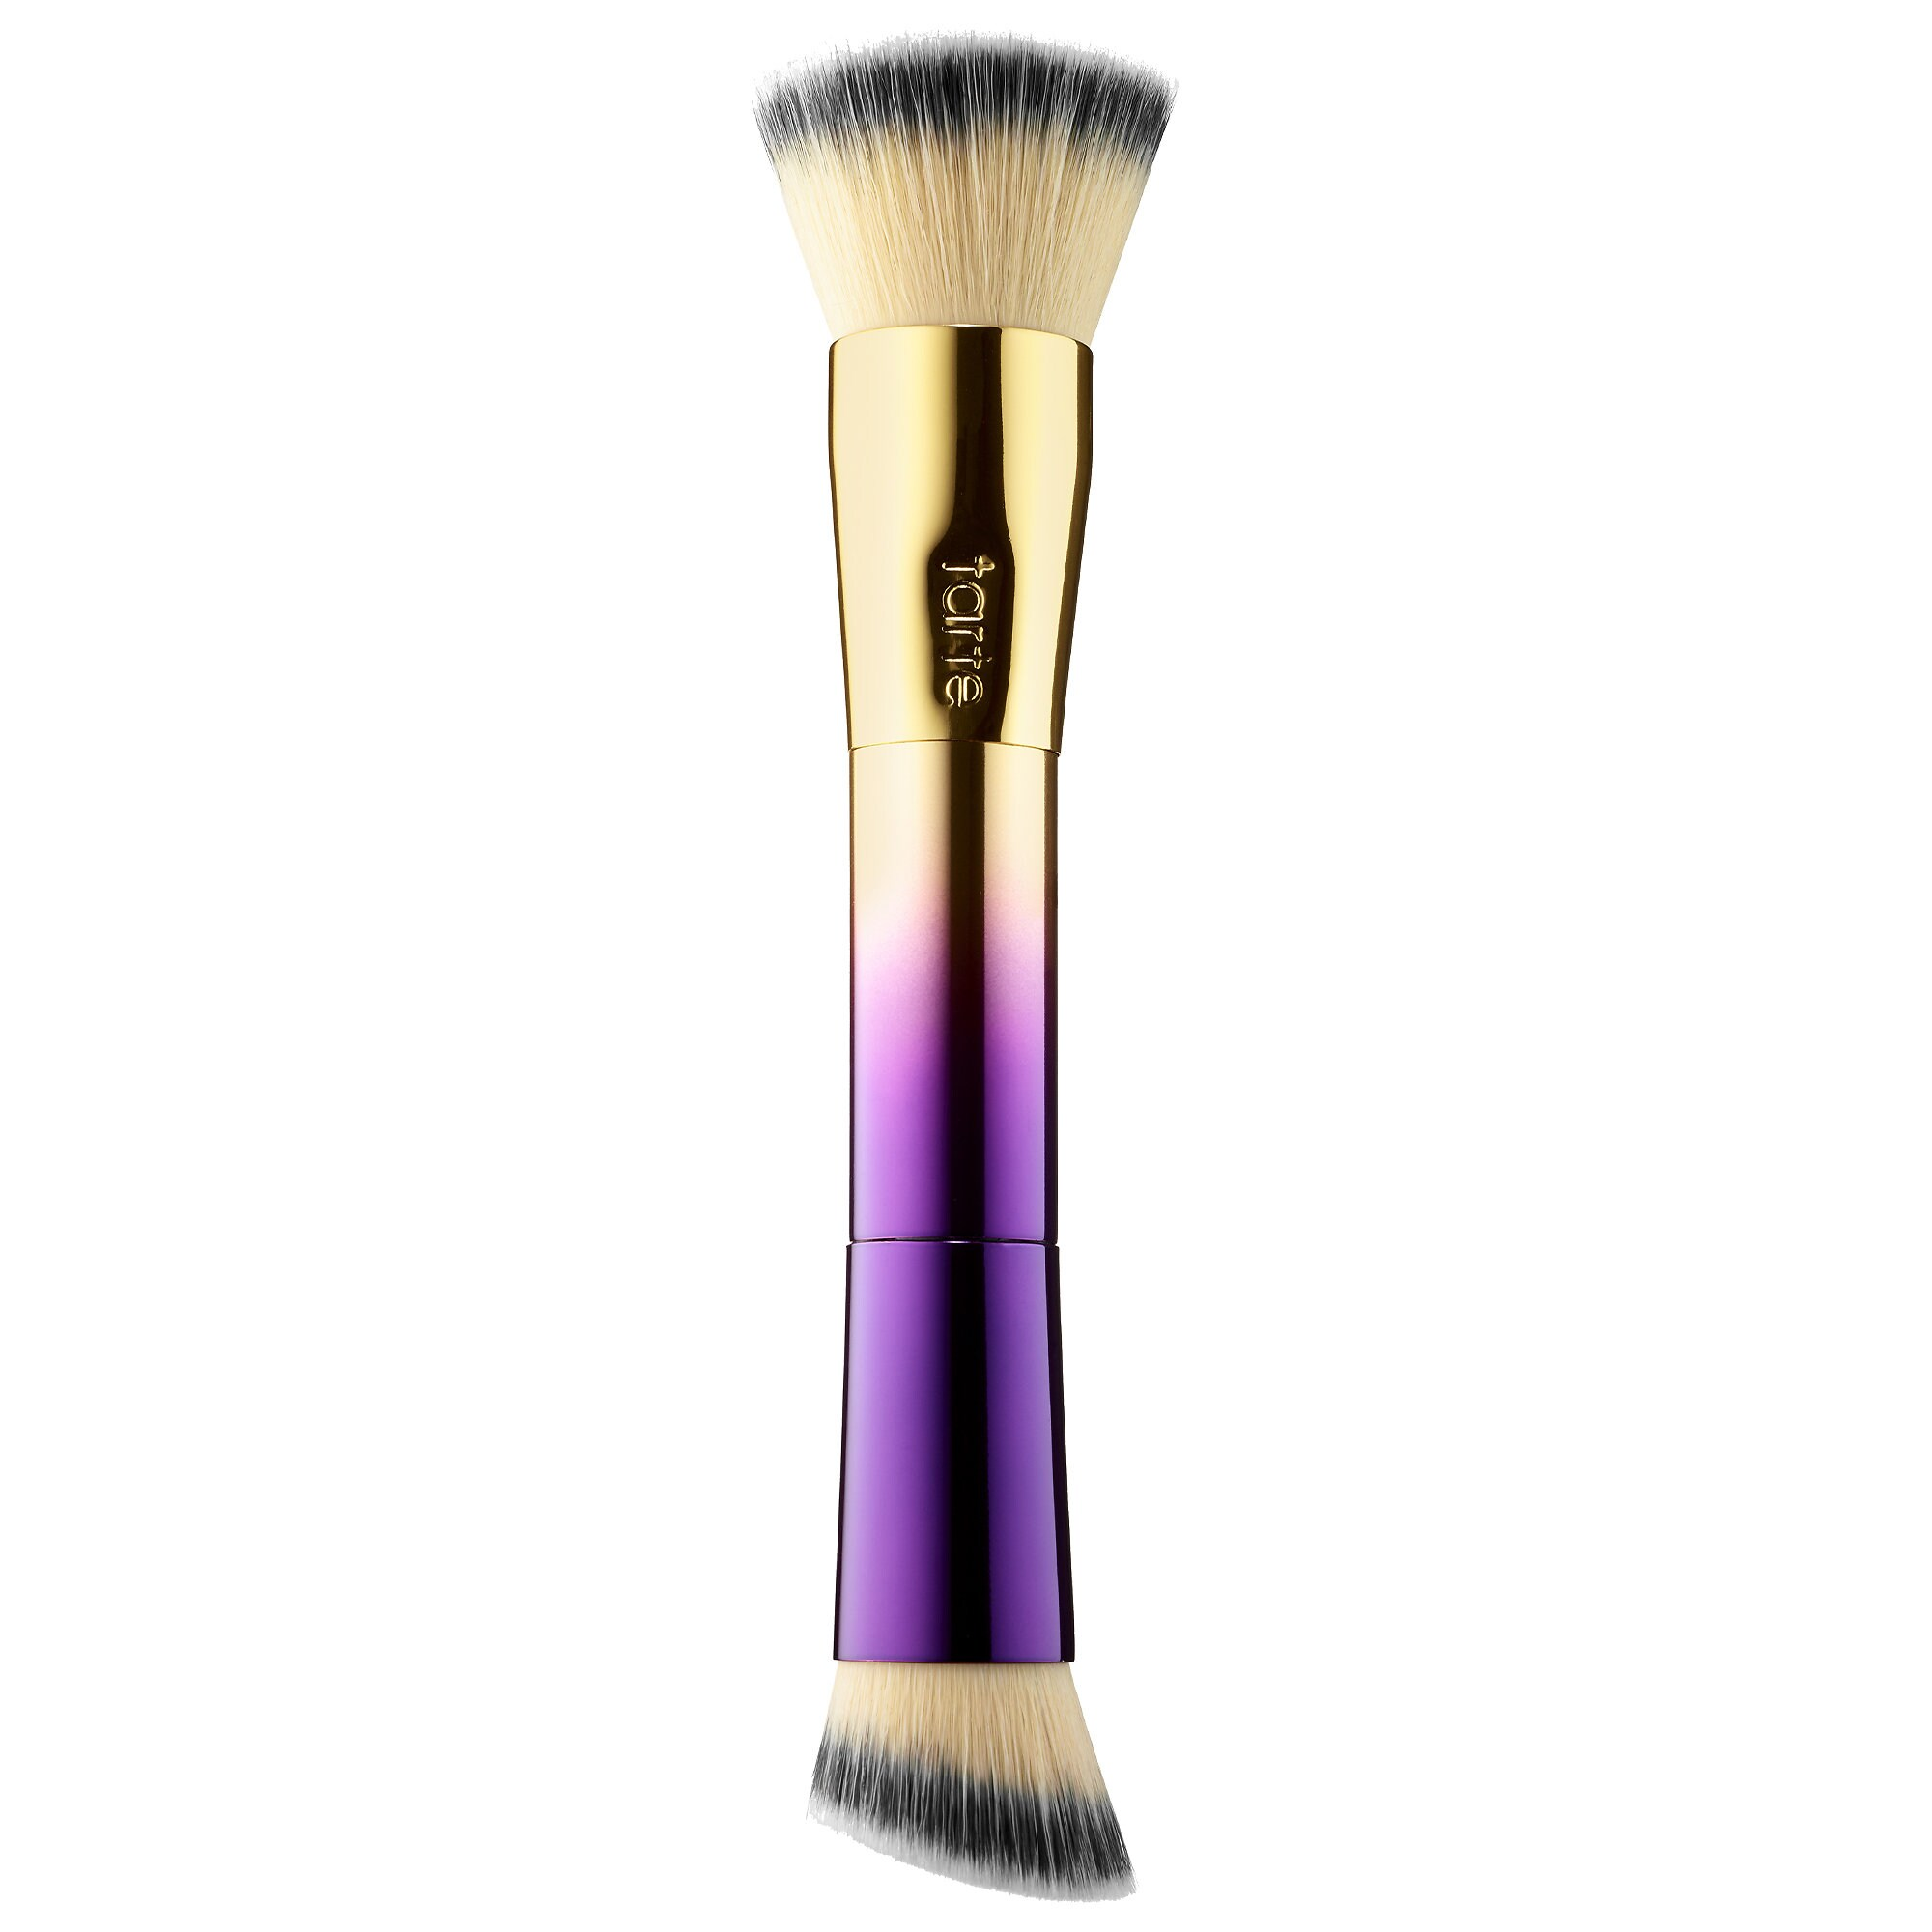 Tarte - Double-Ended Foundation Brush - Rainforest of the Sea™ Collection